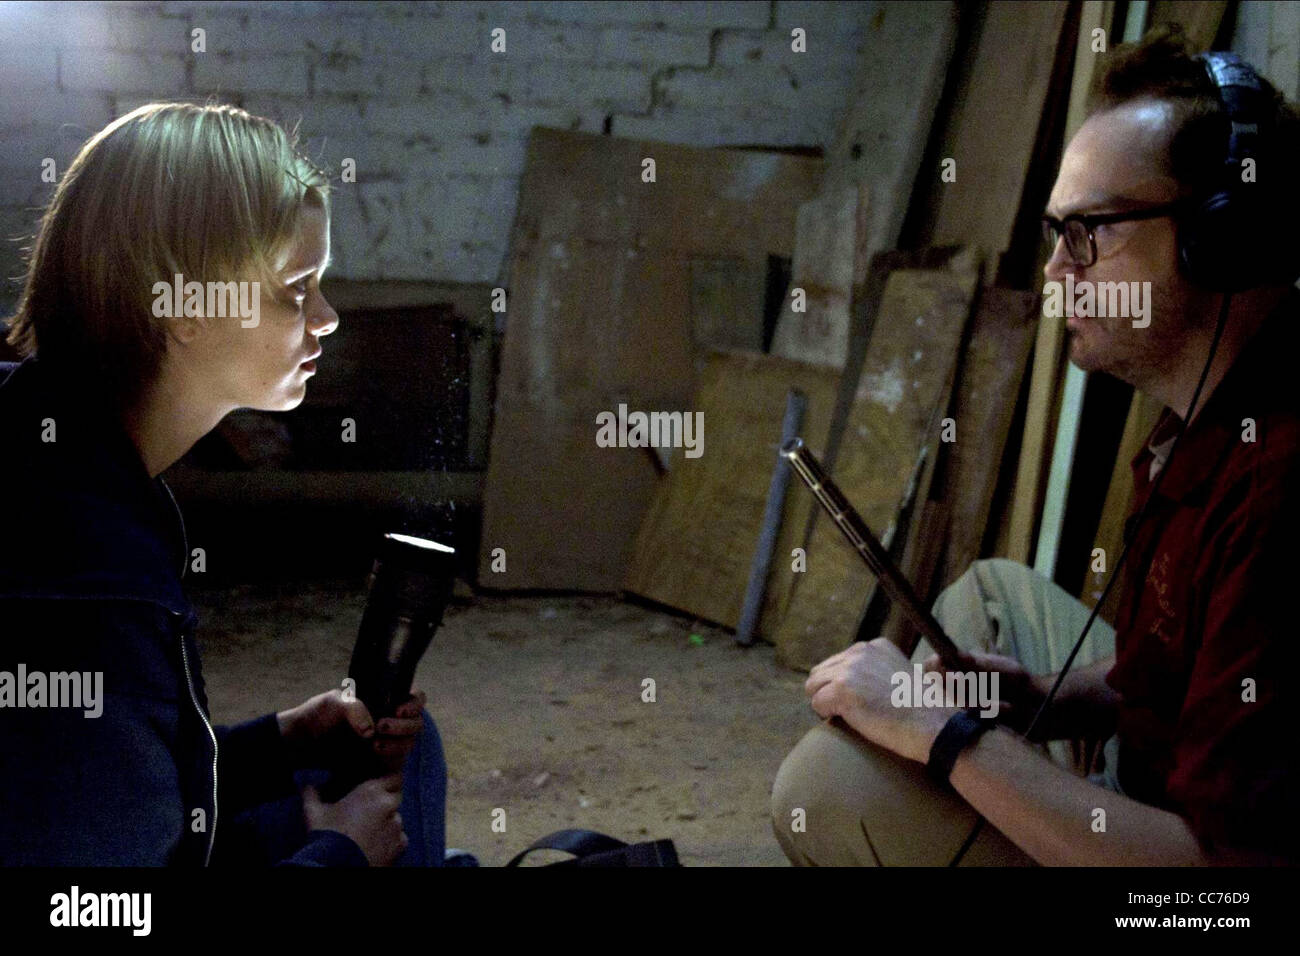 SARA PAXTON & PAT HEALY THE INNKEEPERS (2011) - Stock Image